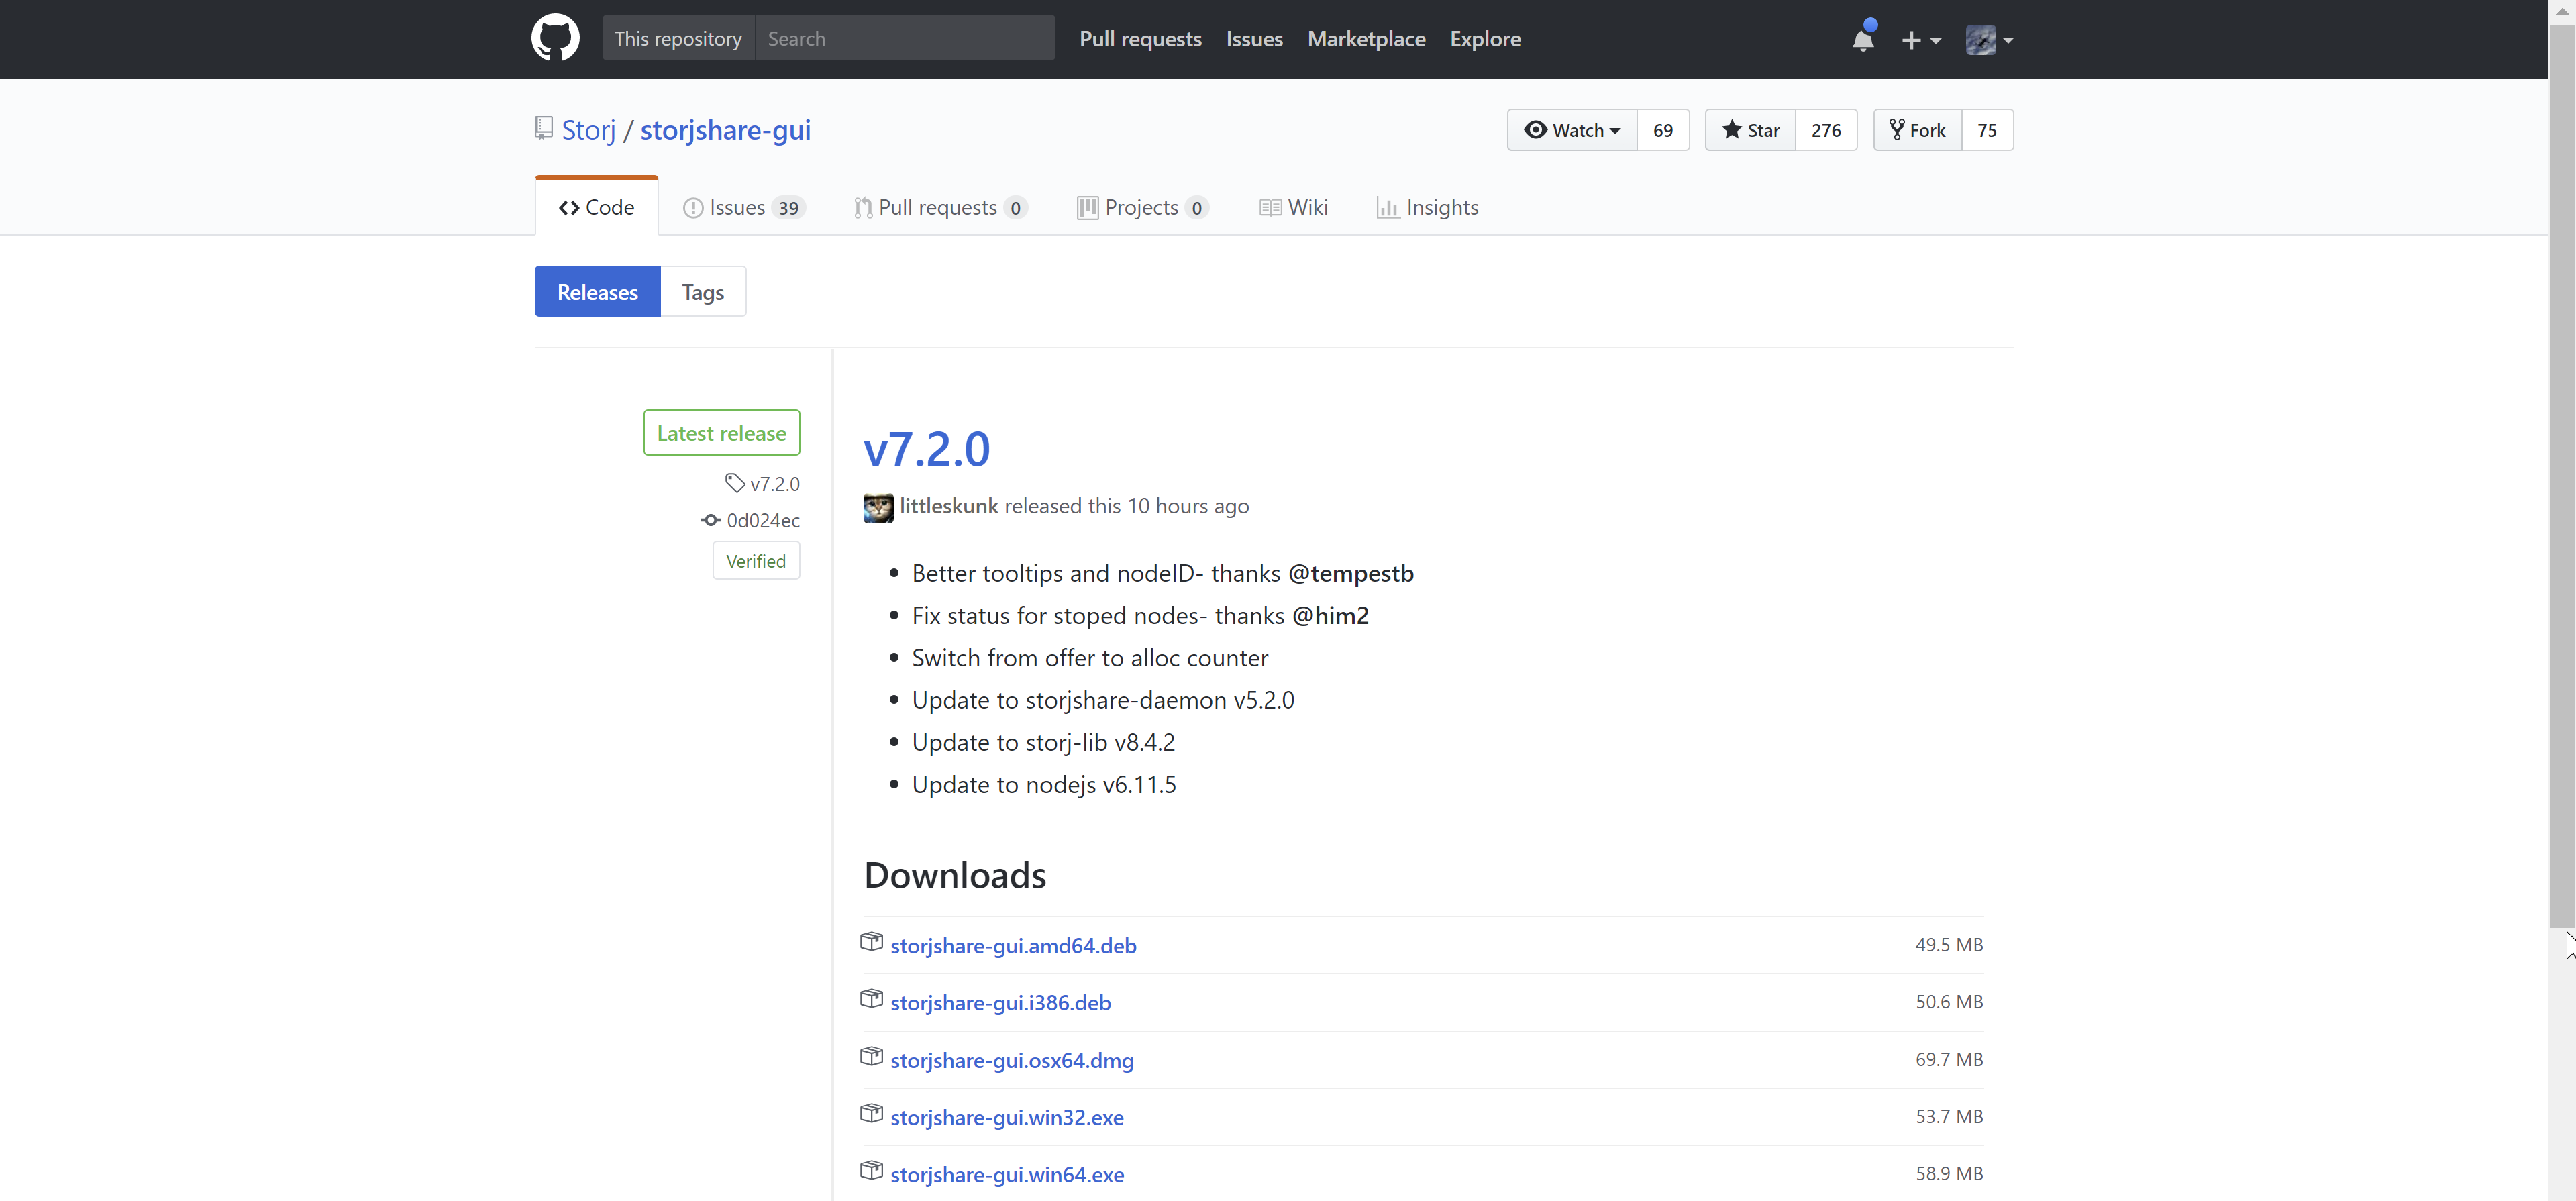 Figure 3.2. Github Storj Share GUI download page.